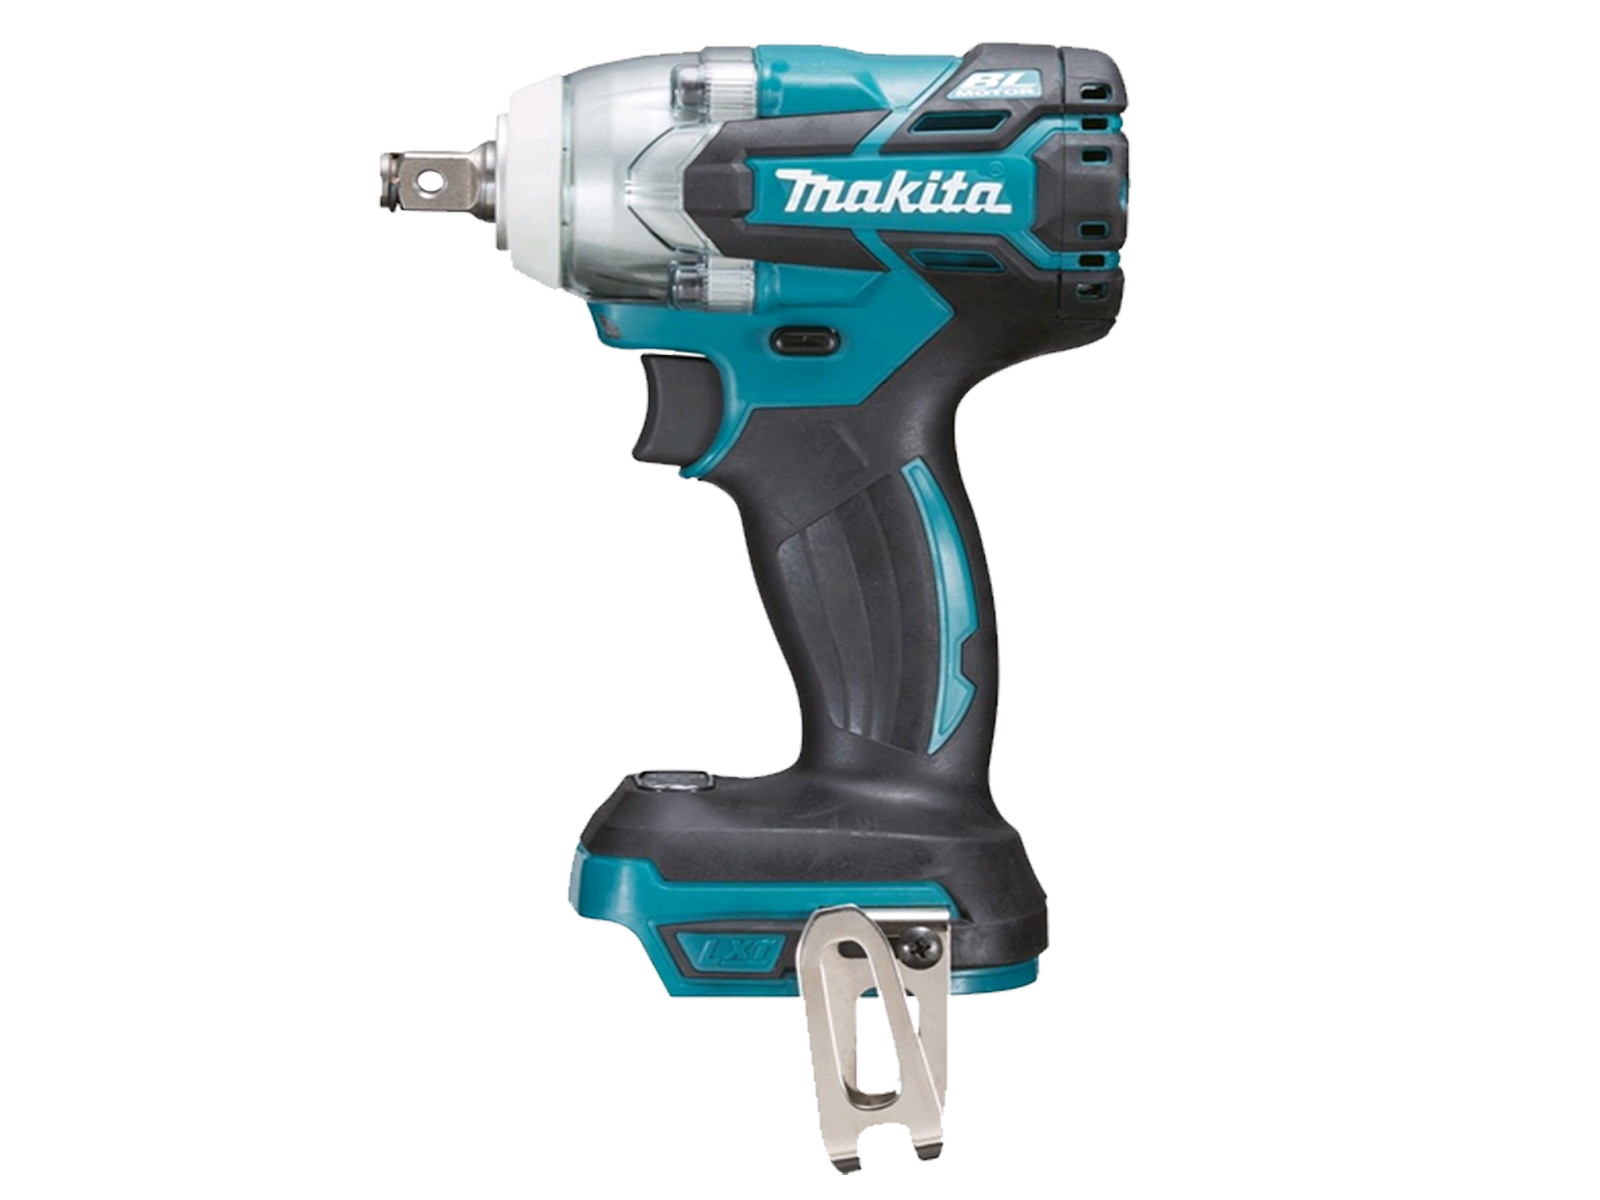 Makita 18V Brushless Impact Wrench LXT - DTW300 - Body Only